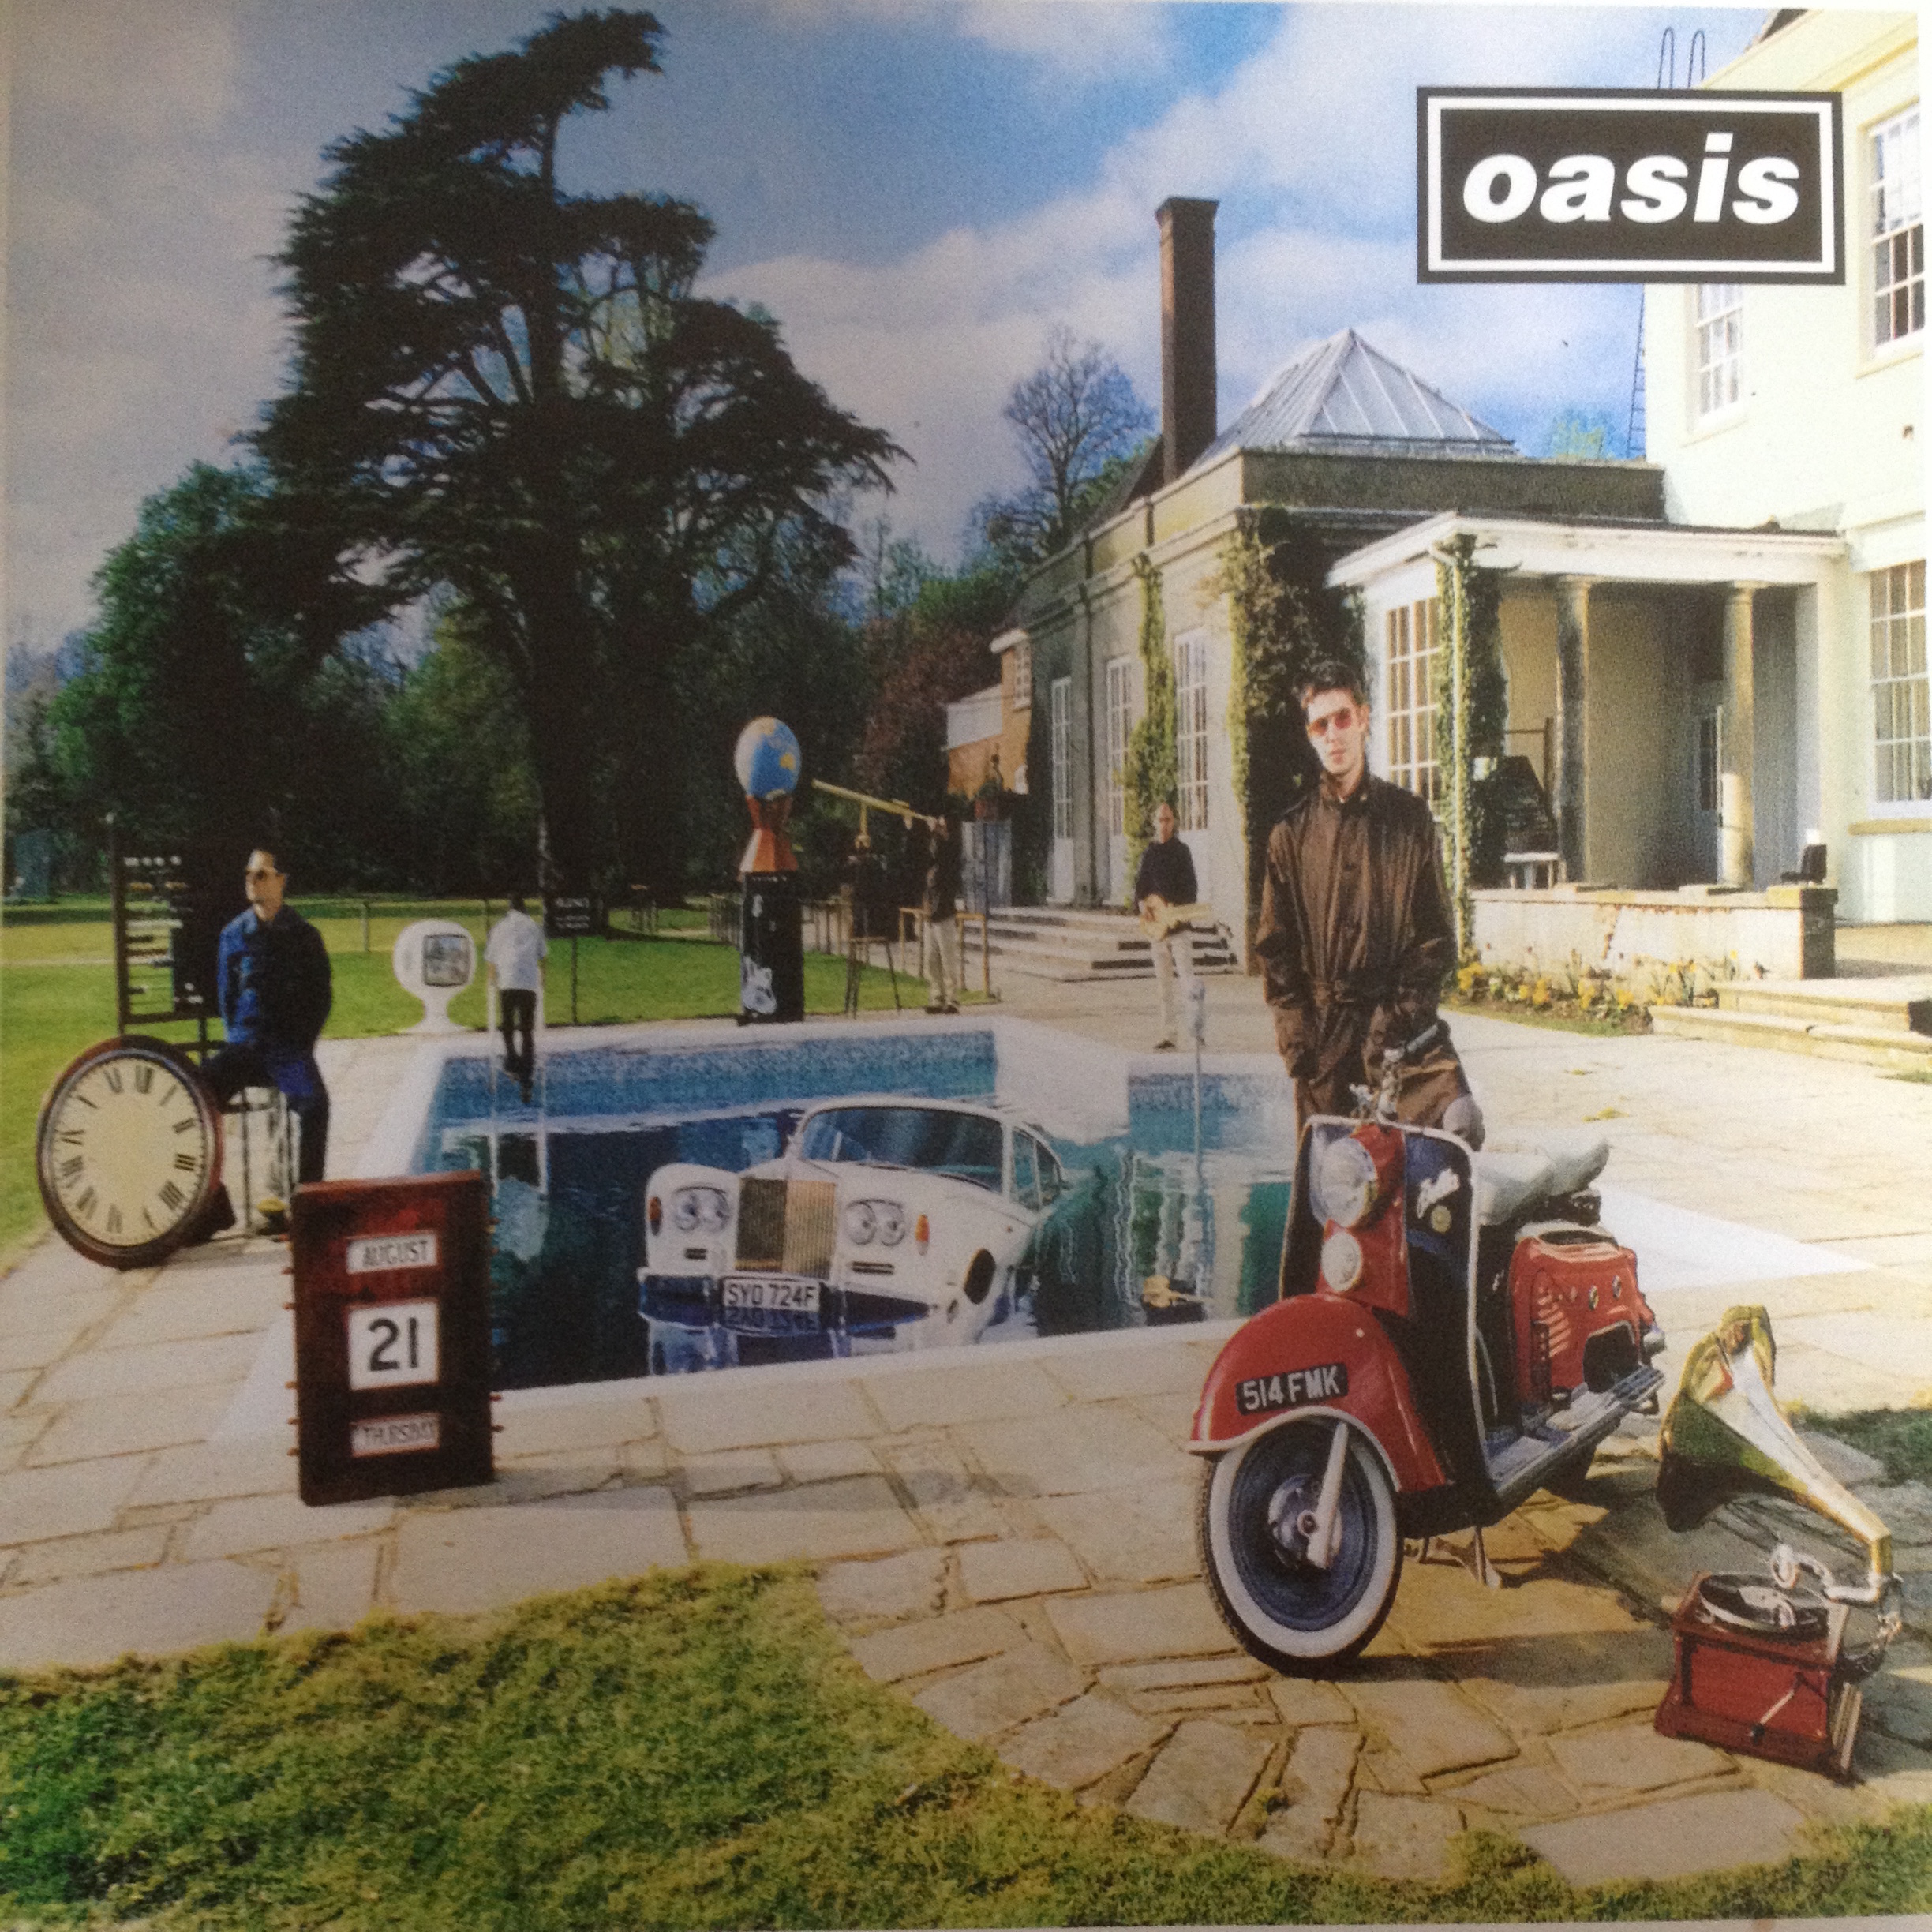 OASIS 「D'You Khow What I Mean?」